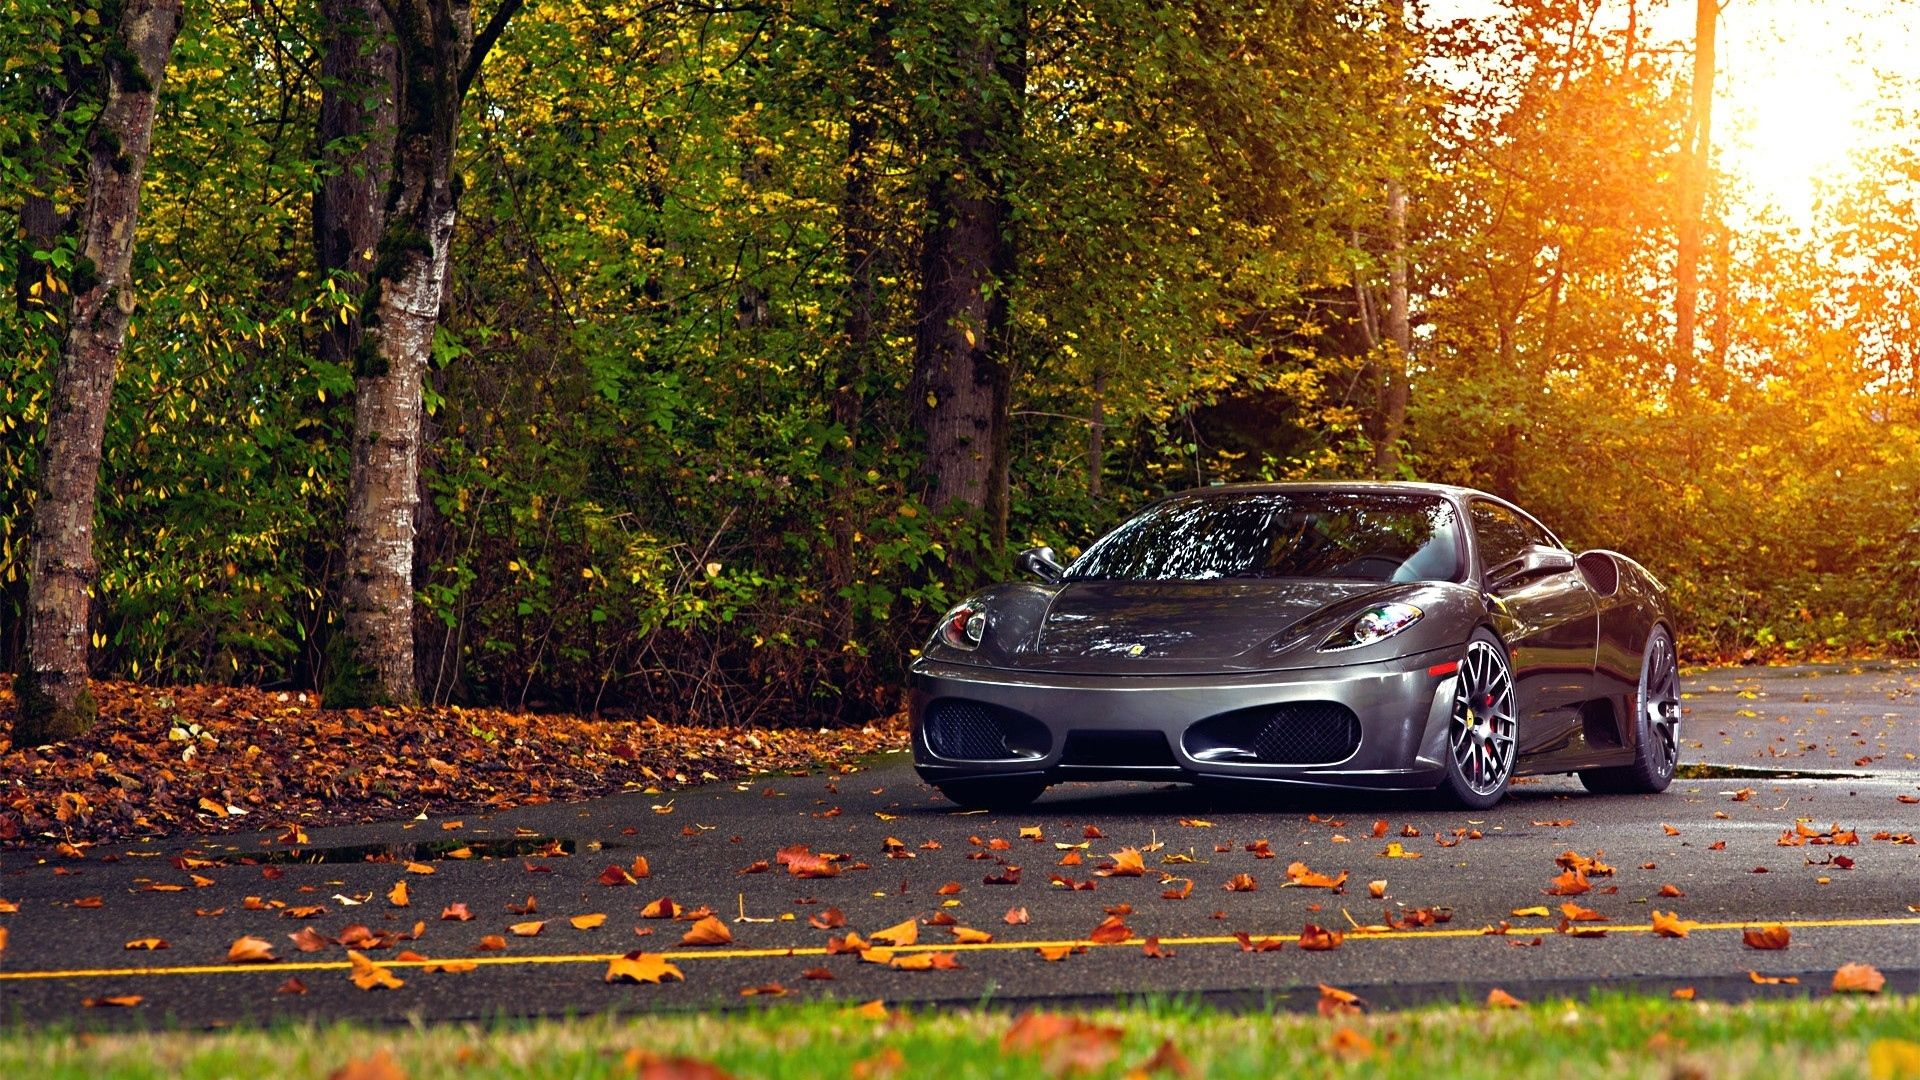 1920x1080 Wallpaper Ferrari 430 Scuderia Park Autumn Auto In 2020 Ferrari Car Ferrari Car Wallpapers